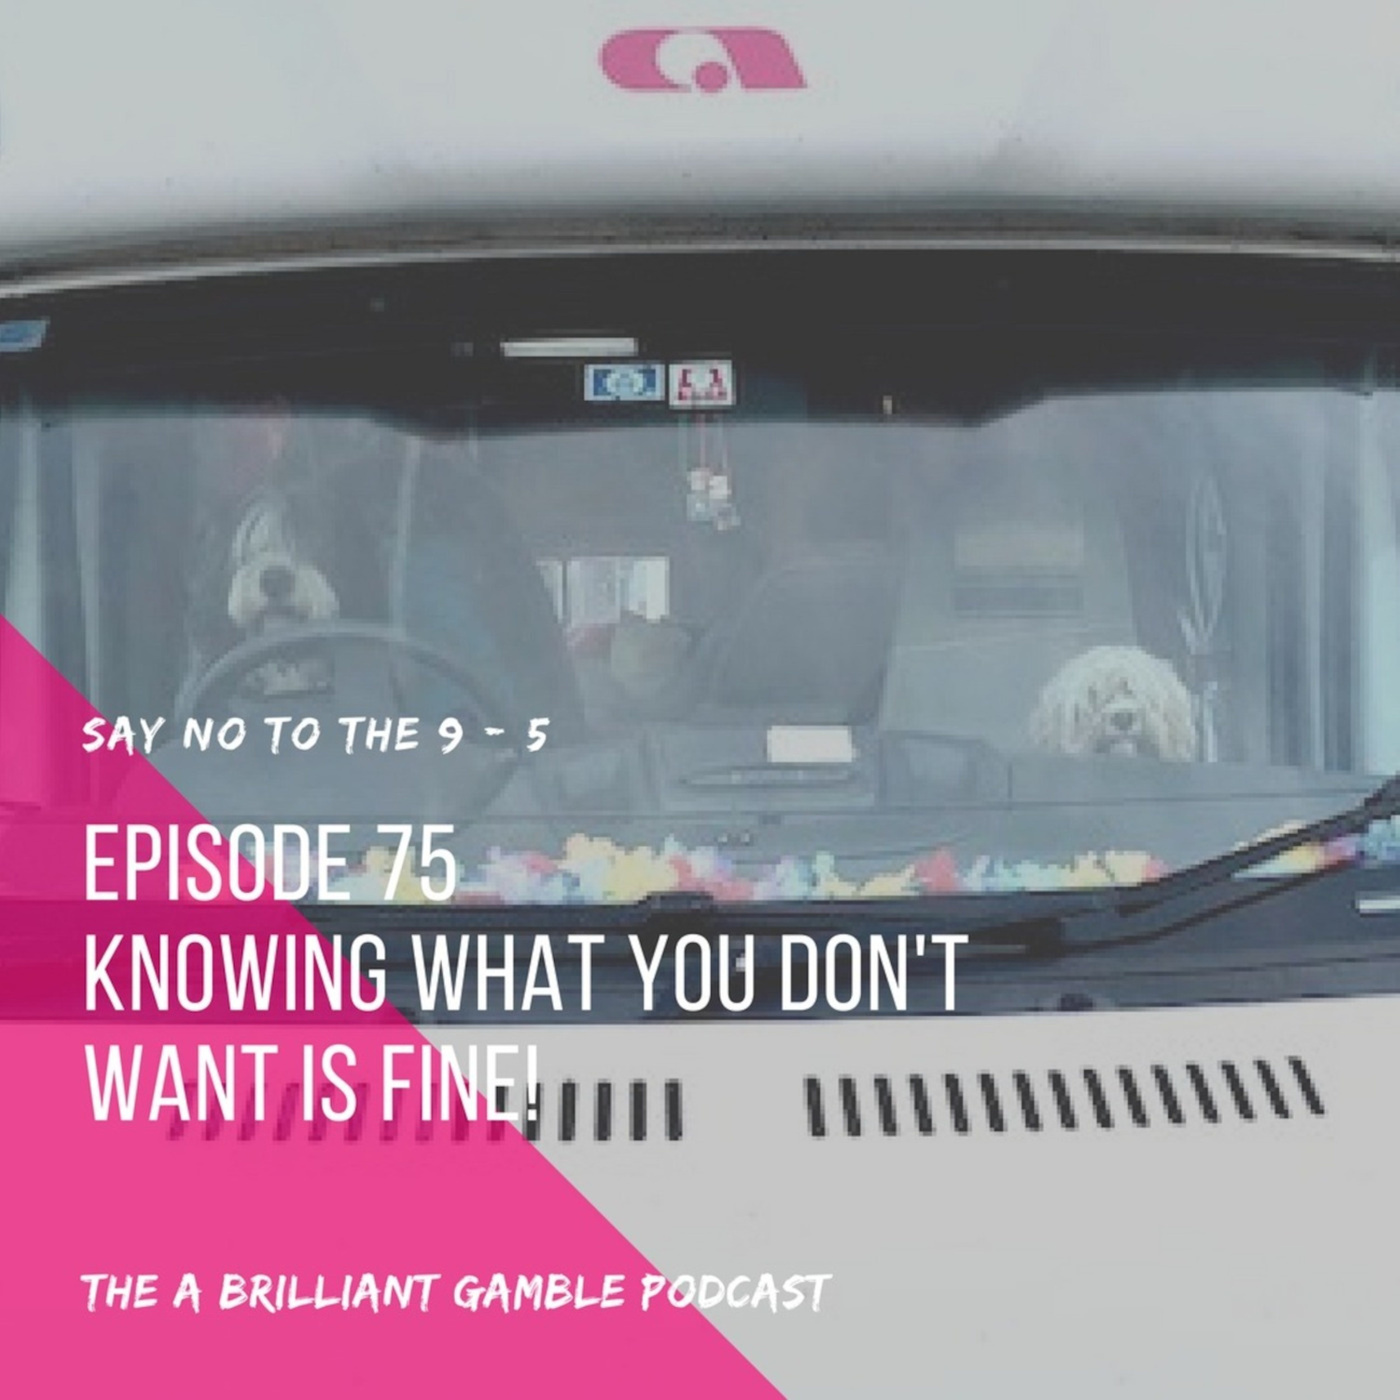 Episode 75: Knowing What You Don't Want is Fine!